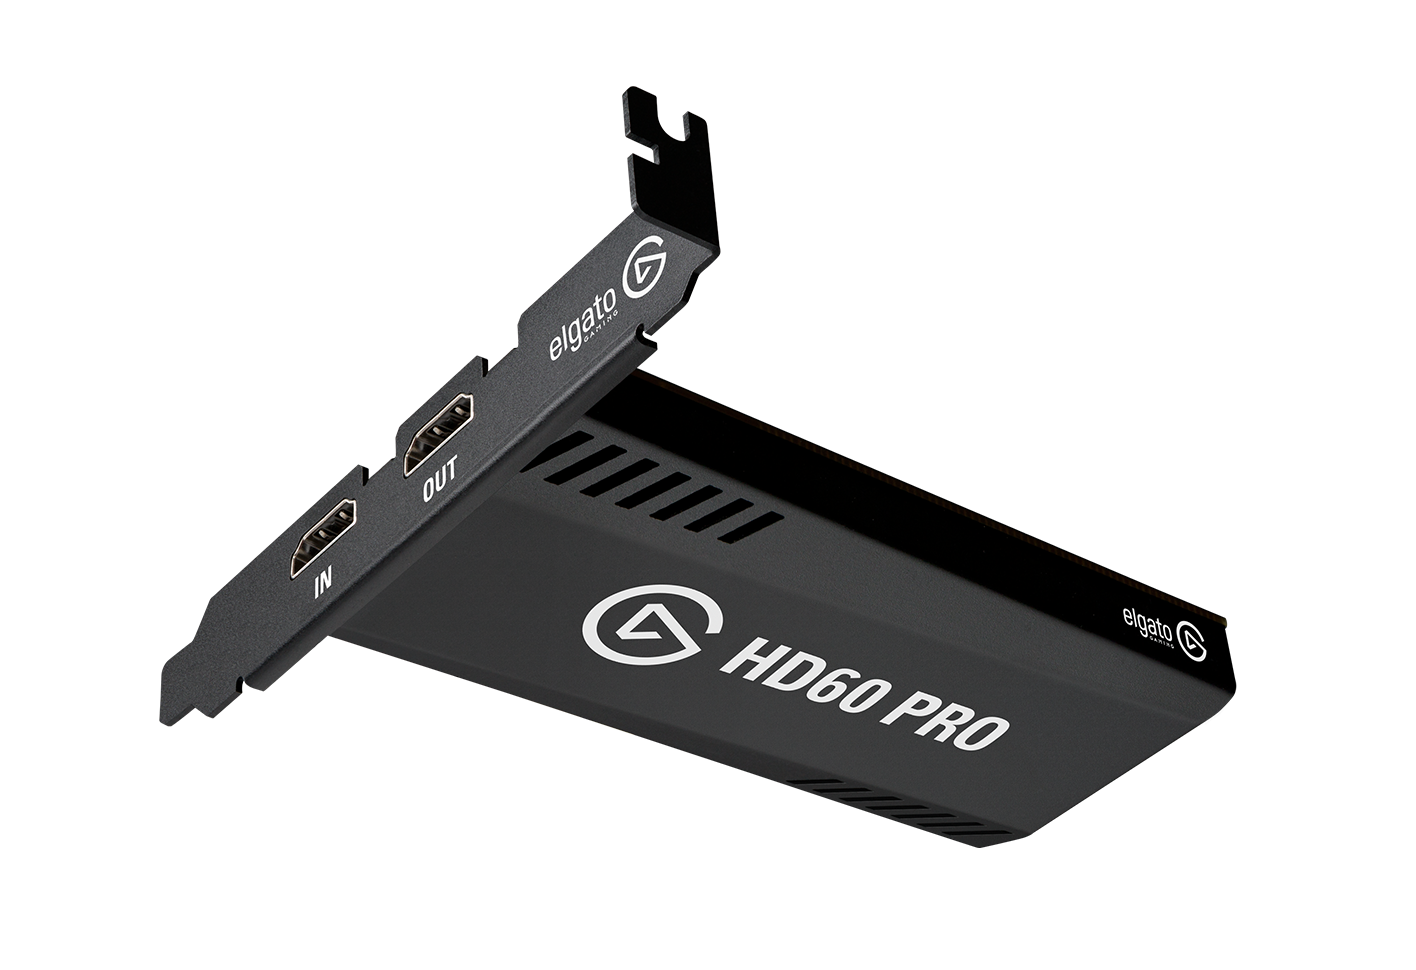 Elgato Game Capture HD60 Pro bottom view